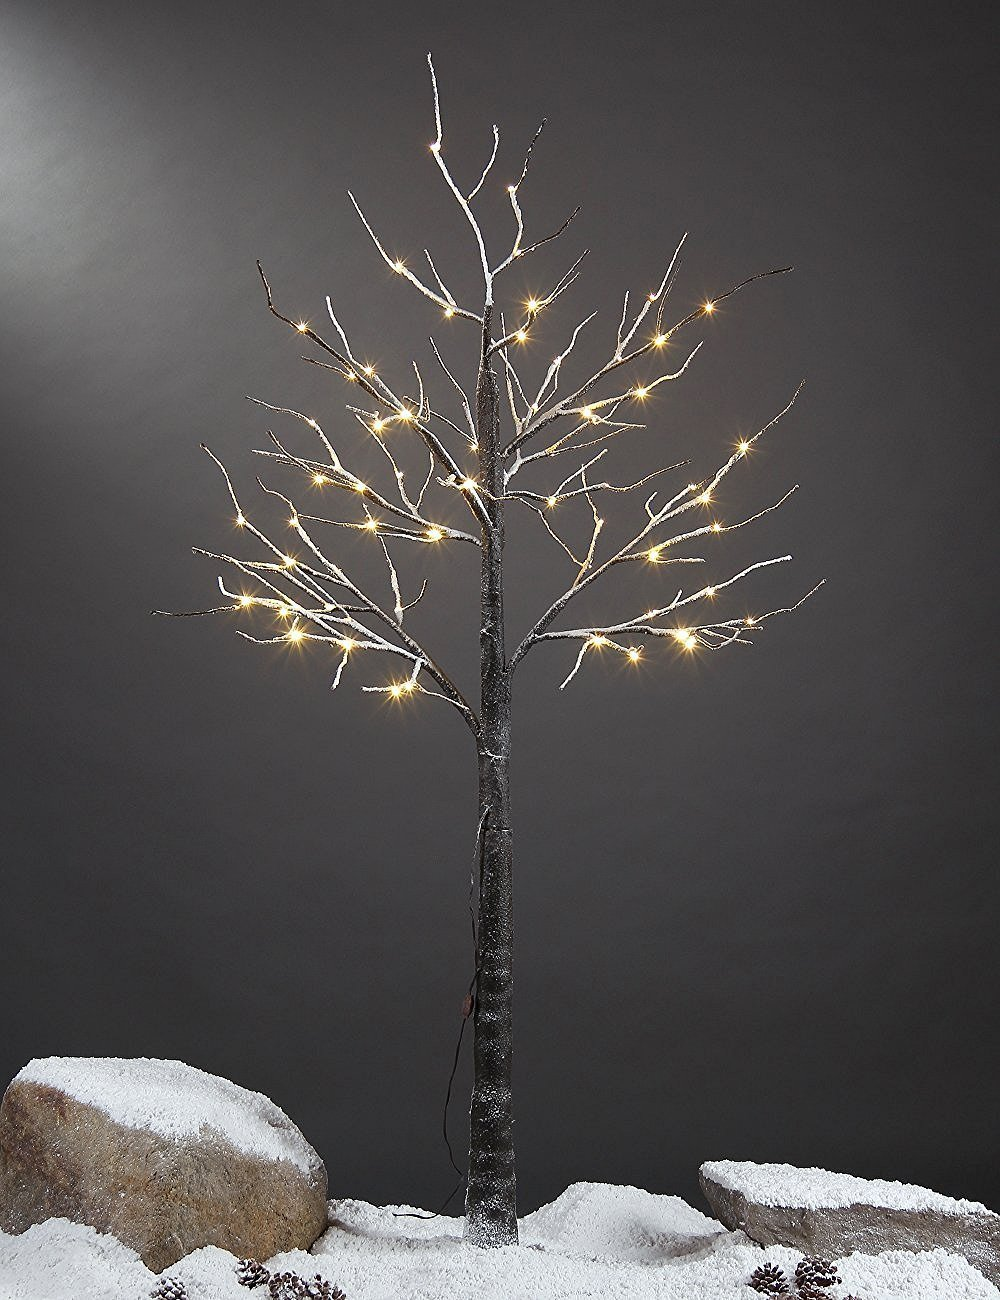 Lightshare 5 Feet Snow Dusted Tree, 72 LED Lights, Warm White, For Christmas Tree and Christmas Village Decoration, Decoration Idea for Home, Festival, and Party, Indoor and Outdoor Use LTS-PXS725FT